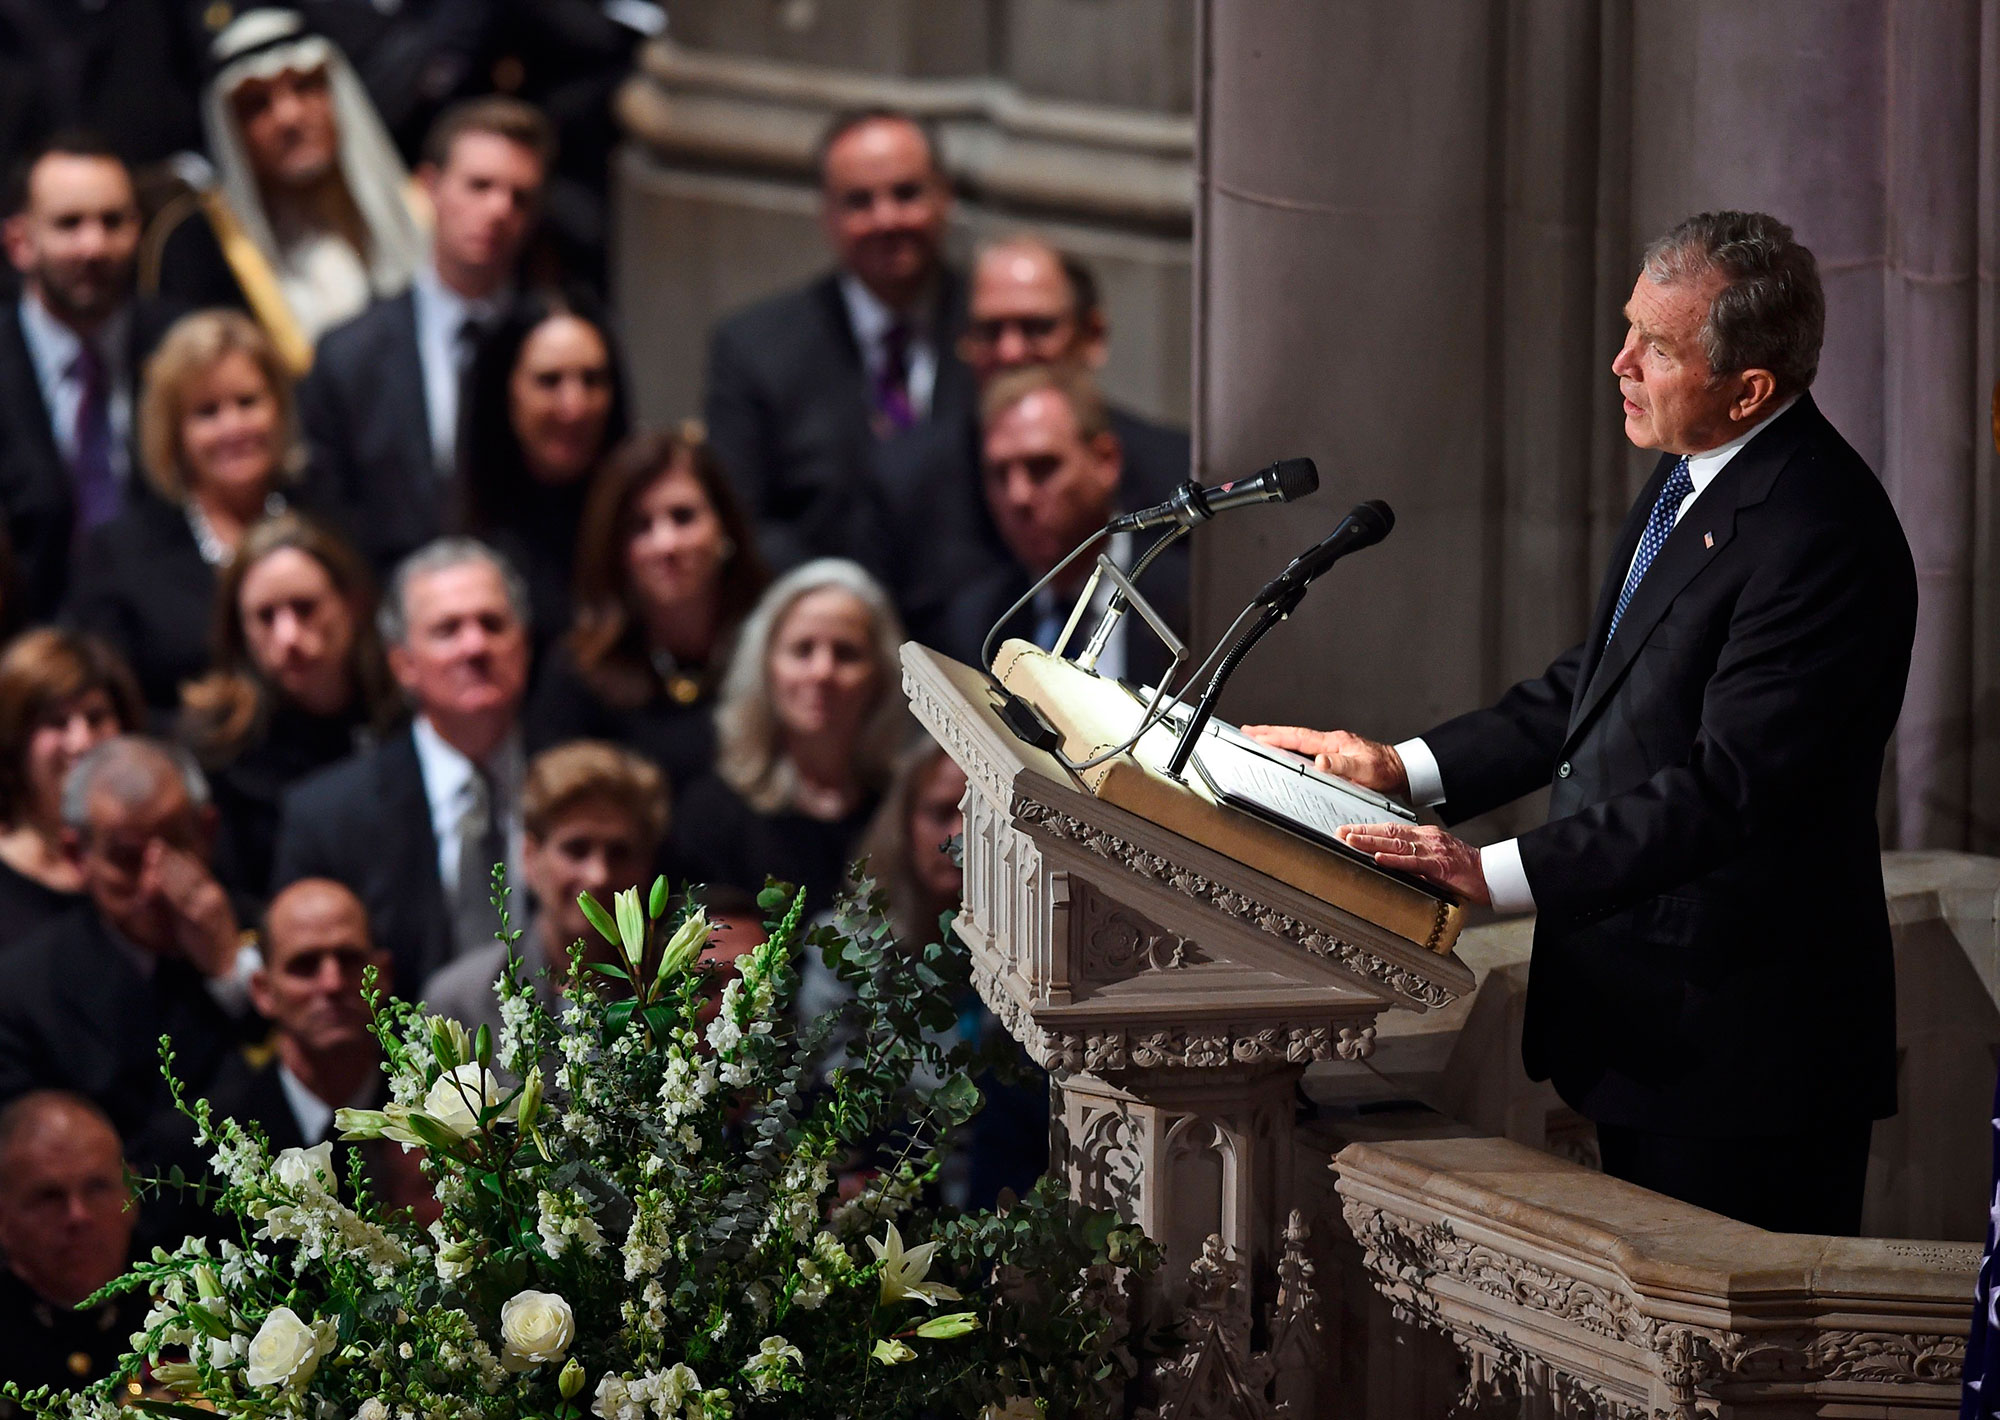 "<div class=""meta image-caption""><div class=""origin-logo origin-image none""><span>none</span></div><span class=""caption-text"">Former president George W. Bush gives a eulogy at the state funeral of his father former US president George H.W. Bush at the Washington National Cathedral in Washington. (BRENDAN SMIALOWSKI/AFP/Getty Images)</span></div>"